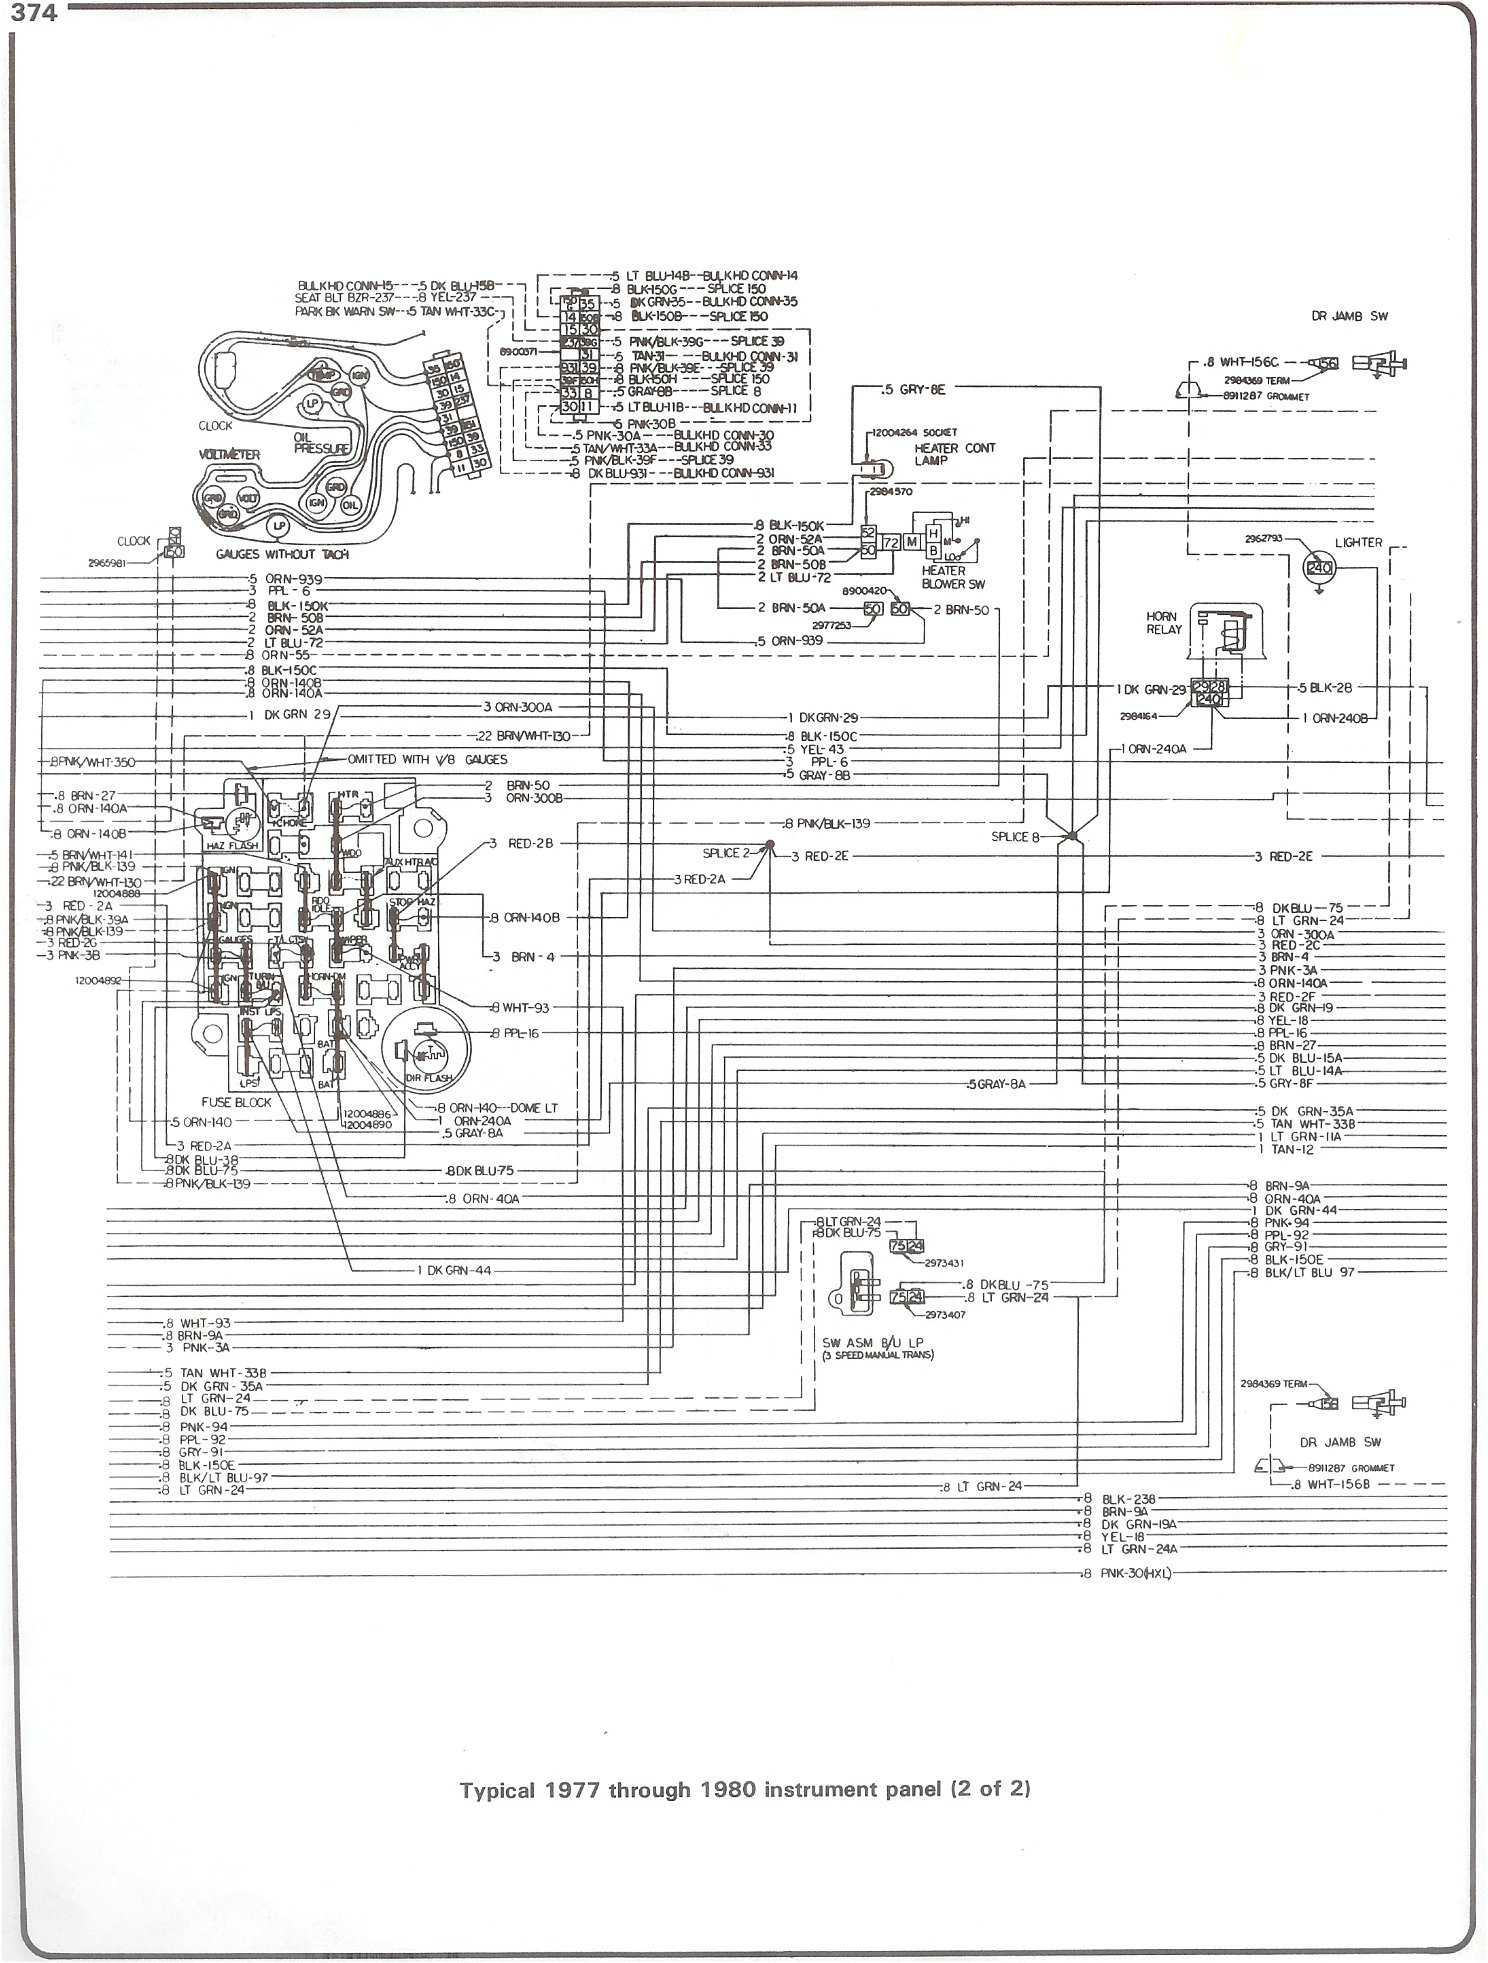 77 80_instrument_pg2 complete 73 87 wiring diagrams wiring diagram for 1986 chevy p30 7.4l at soozxer.org